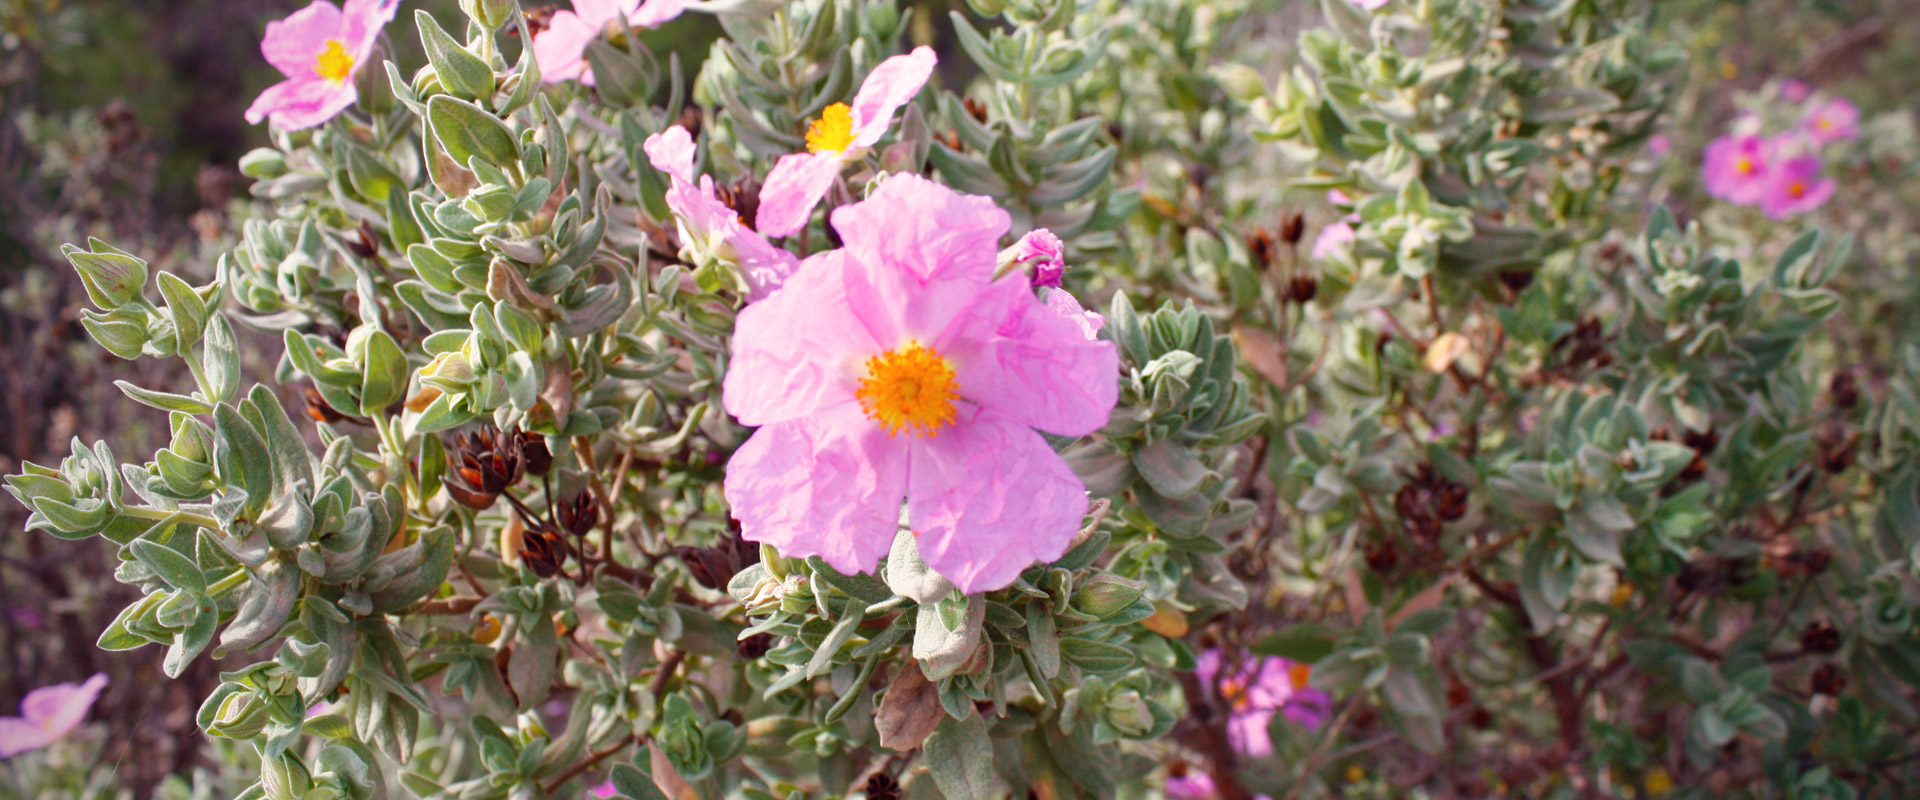 Rockrose in Xortà mountain